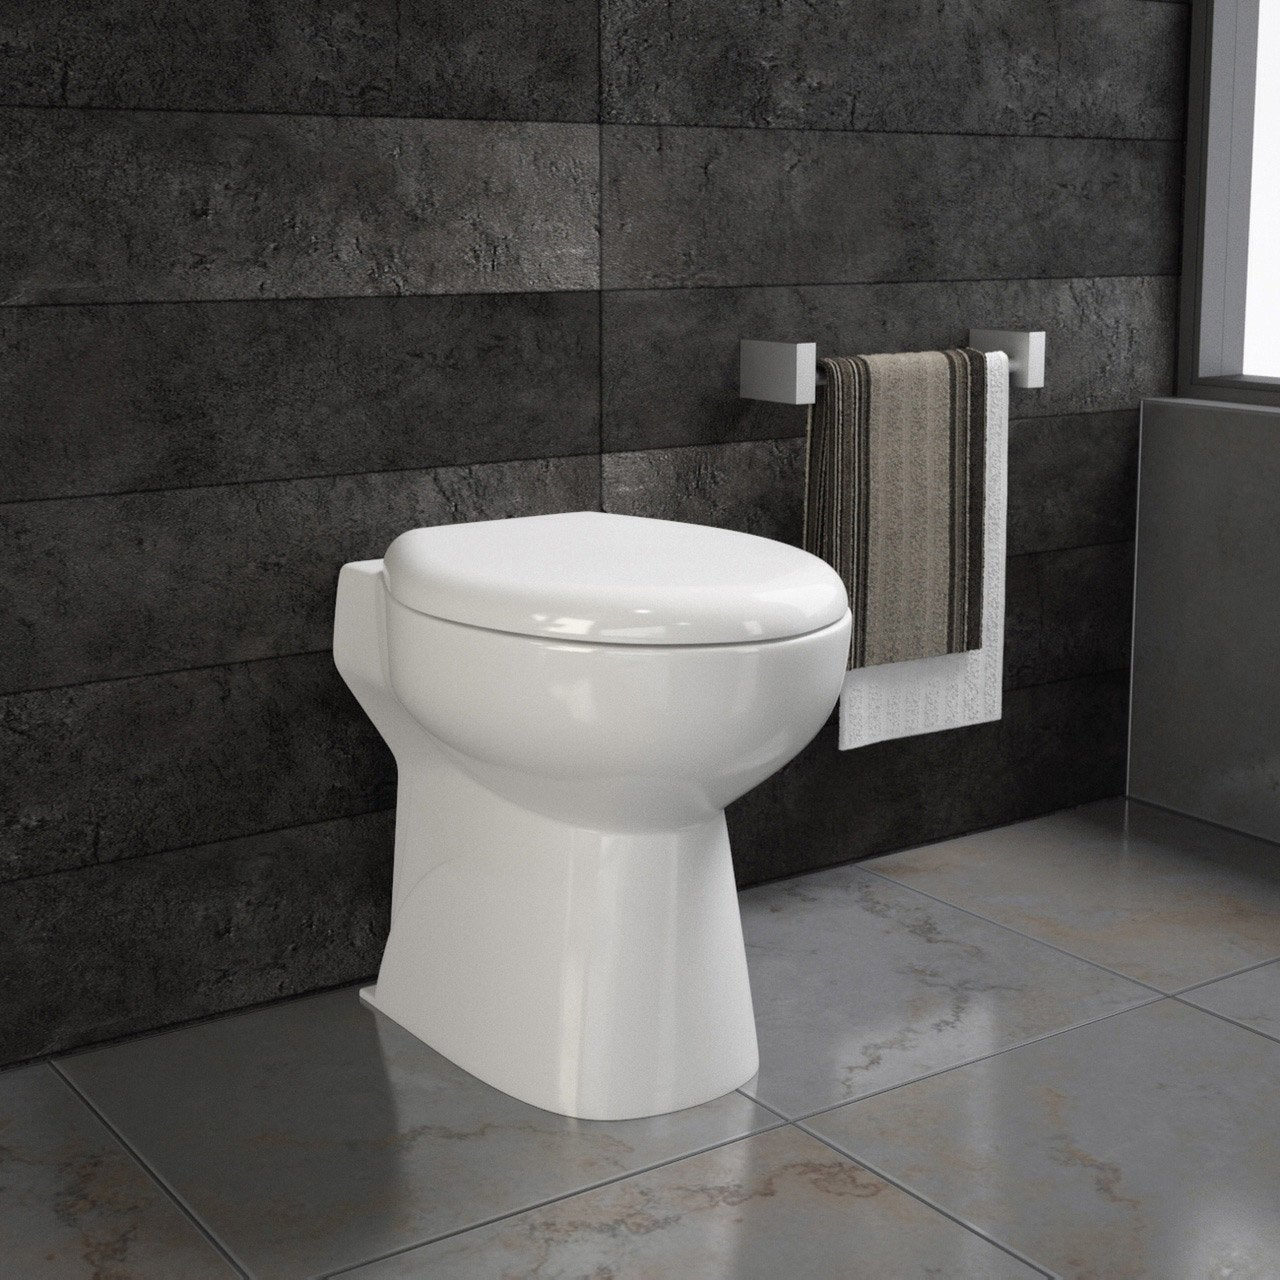 Wc compact avec broyeur integr sensea remix leroy merlin - Meuble lave main wc leroy merlin ...